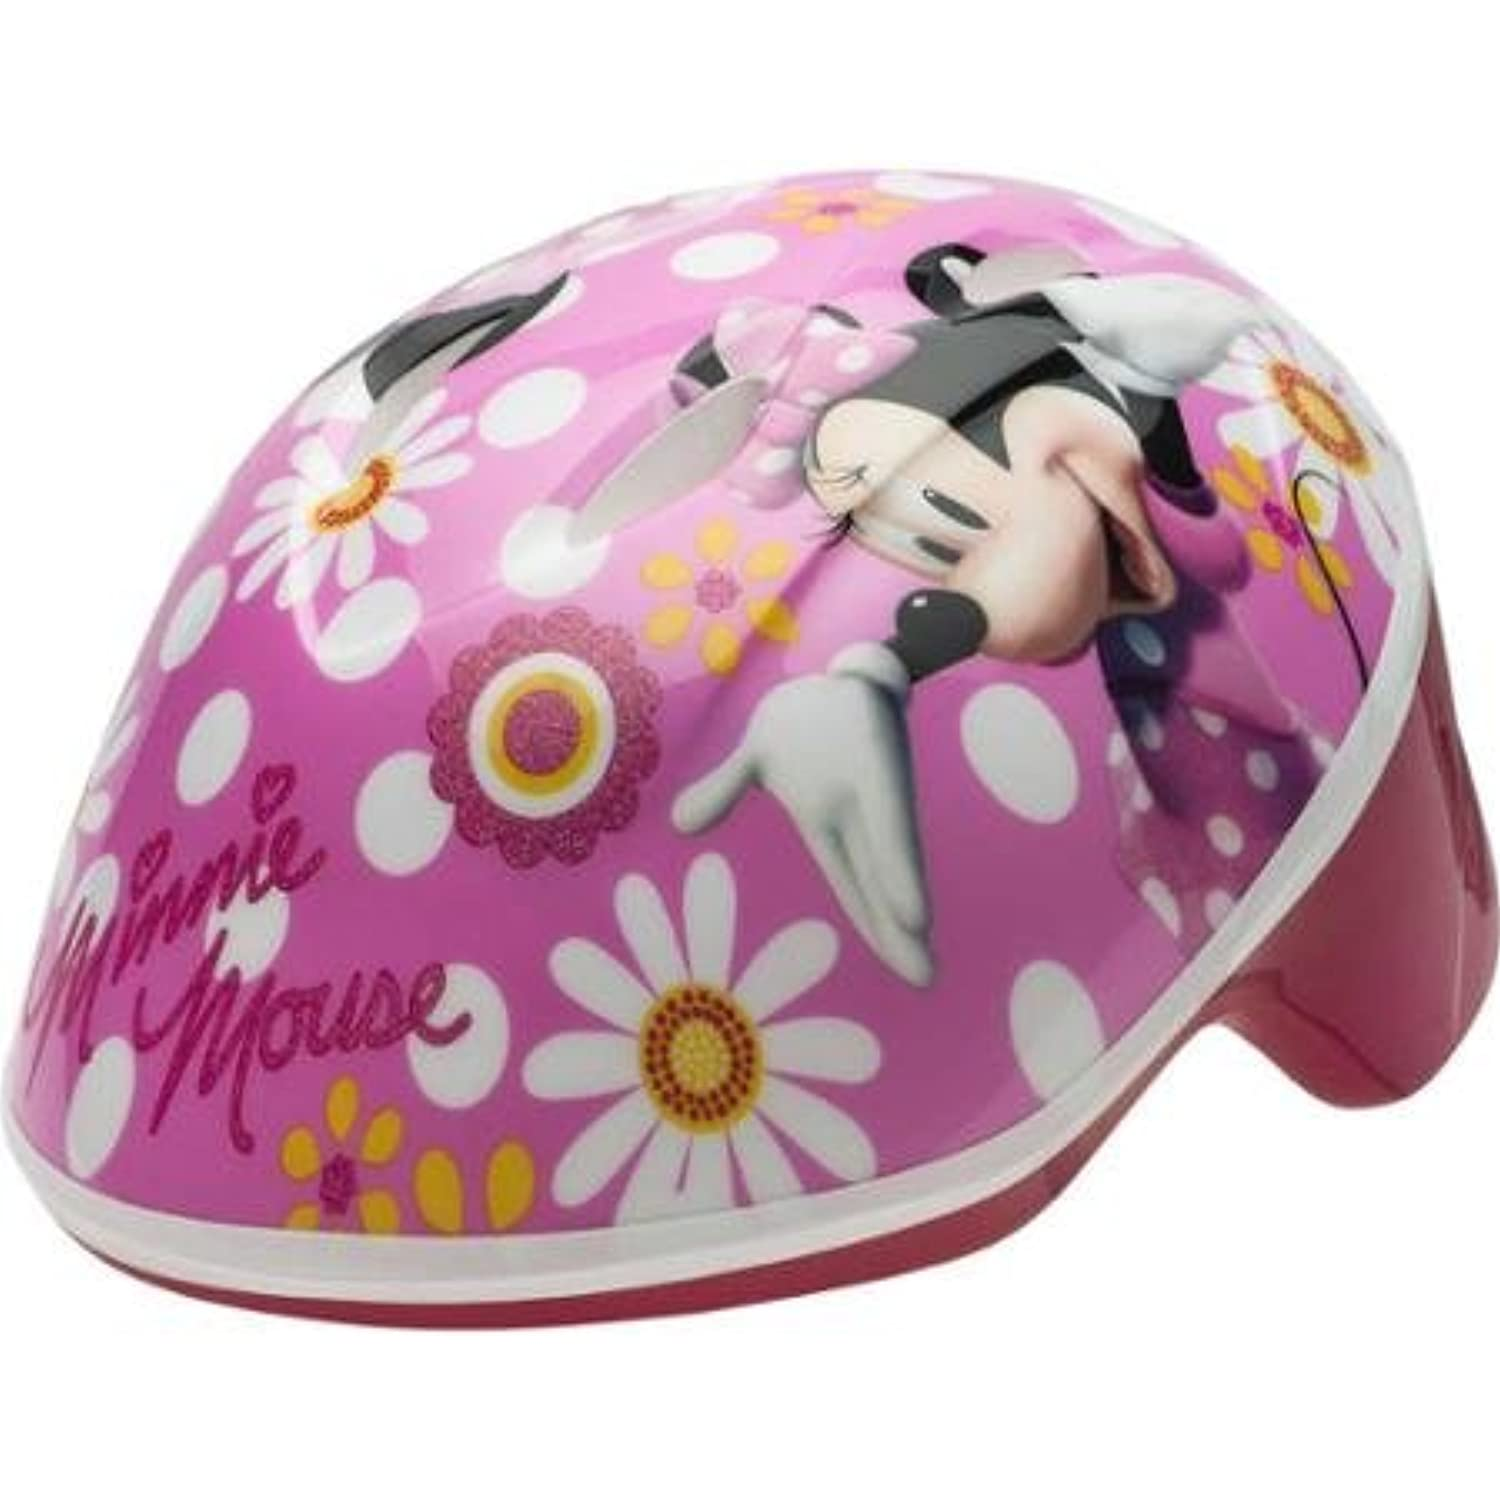 Disney Minnie Mouse Self-Adjust Toddler Helmet With High-Impact Reflectors For Visibility, For 3 Years And Up, Pink by Generic